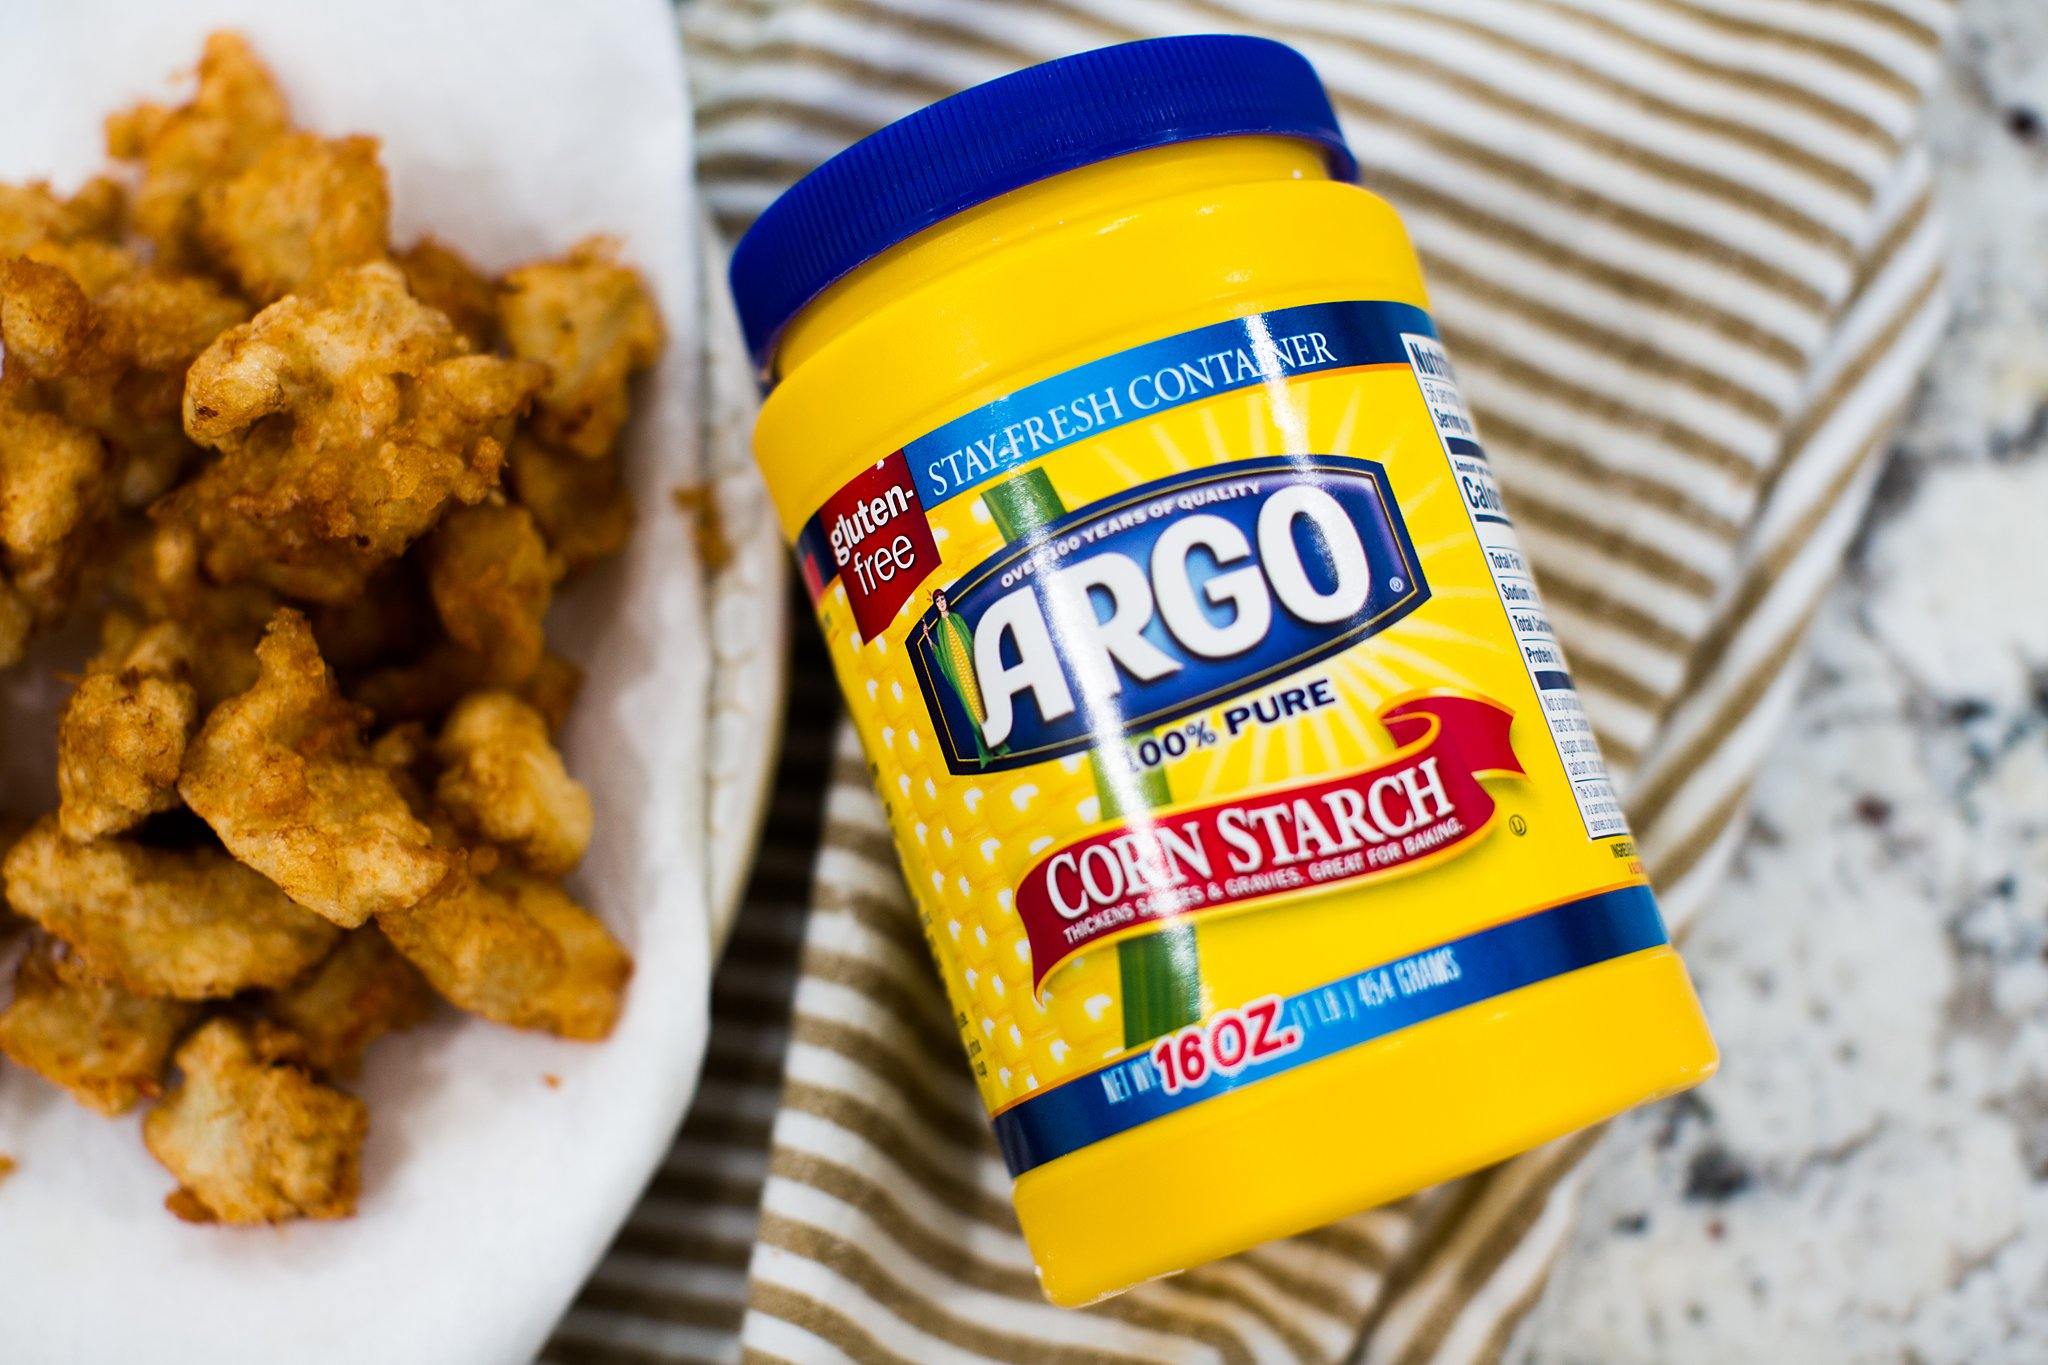 argo cornstarch container with crispy fried chicken